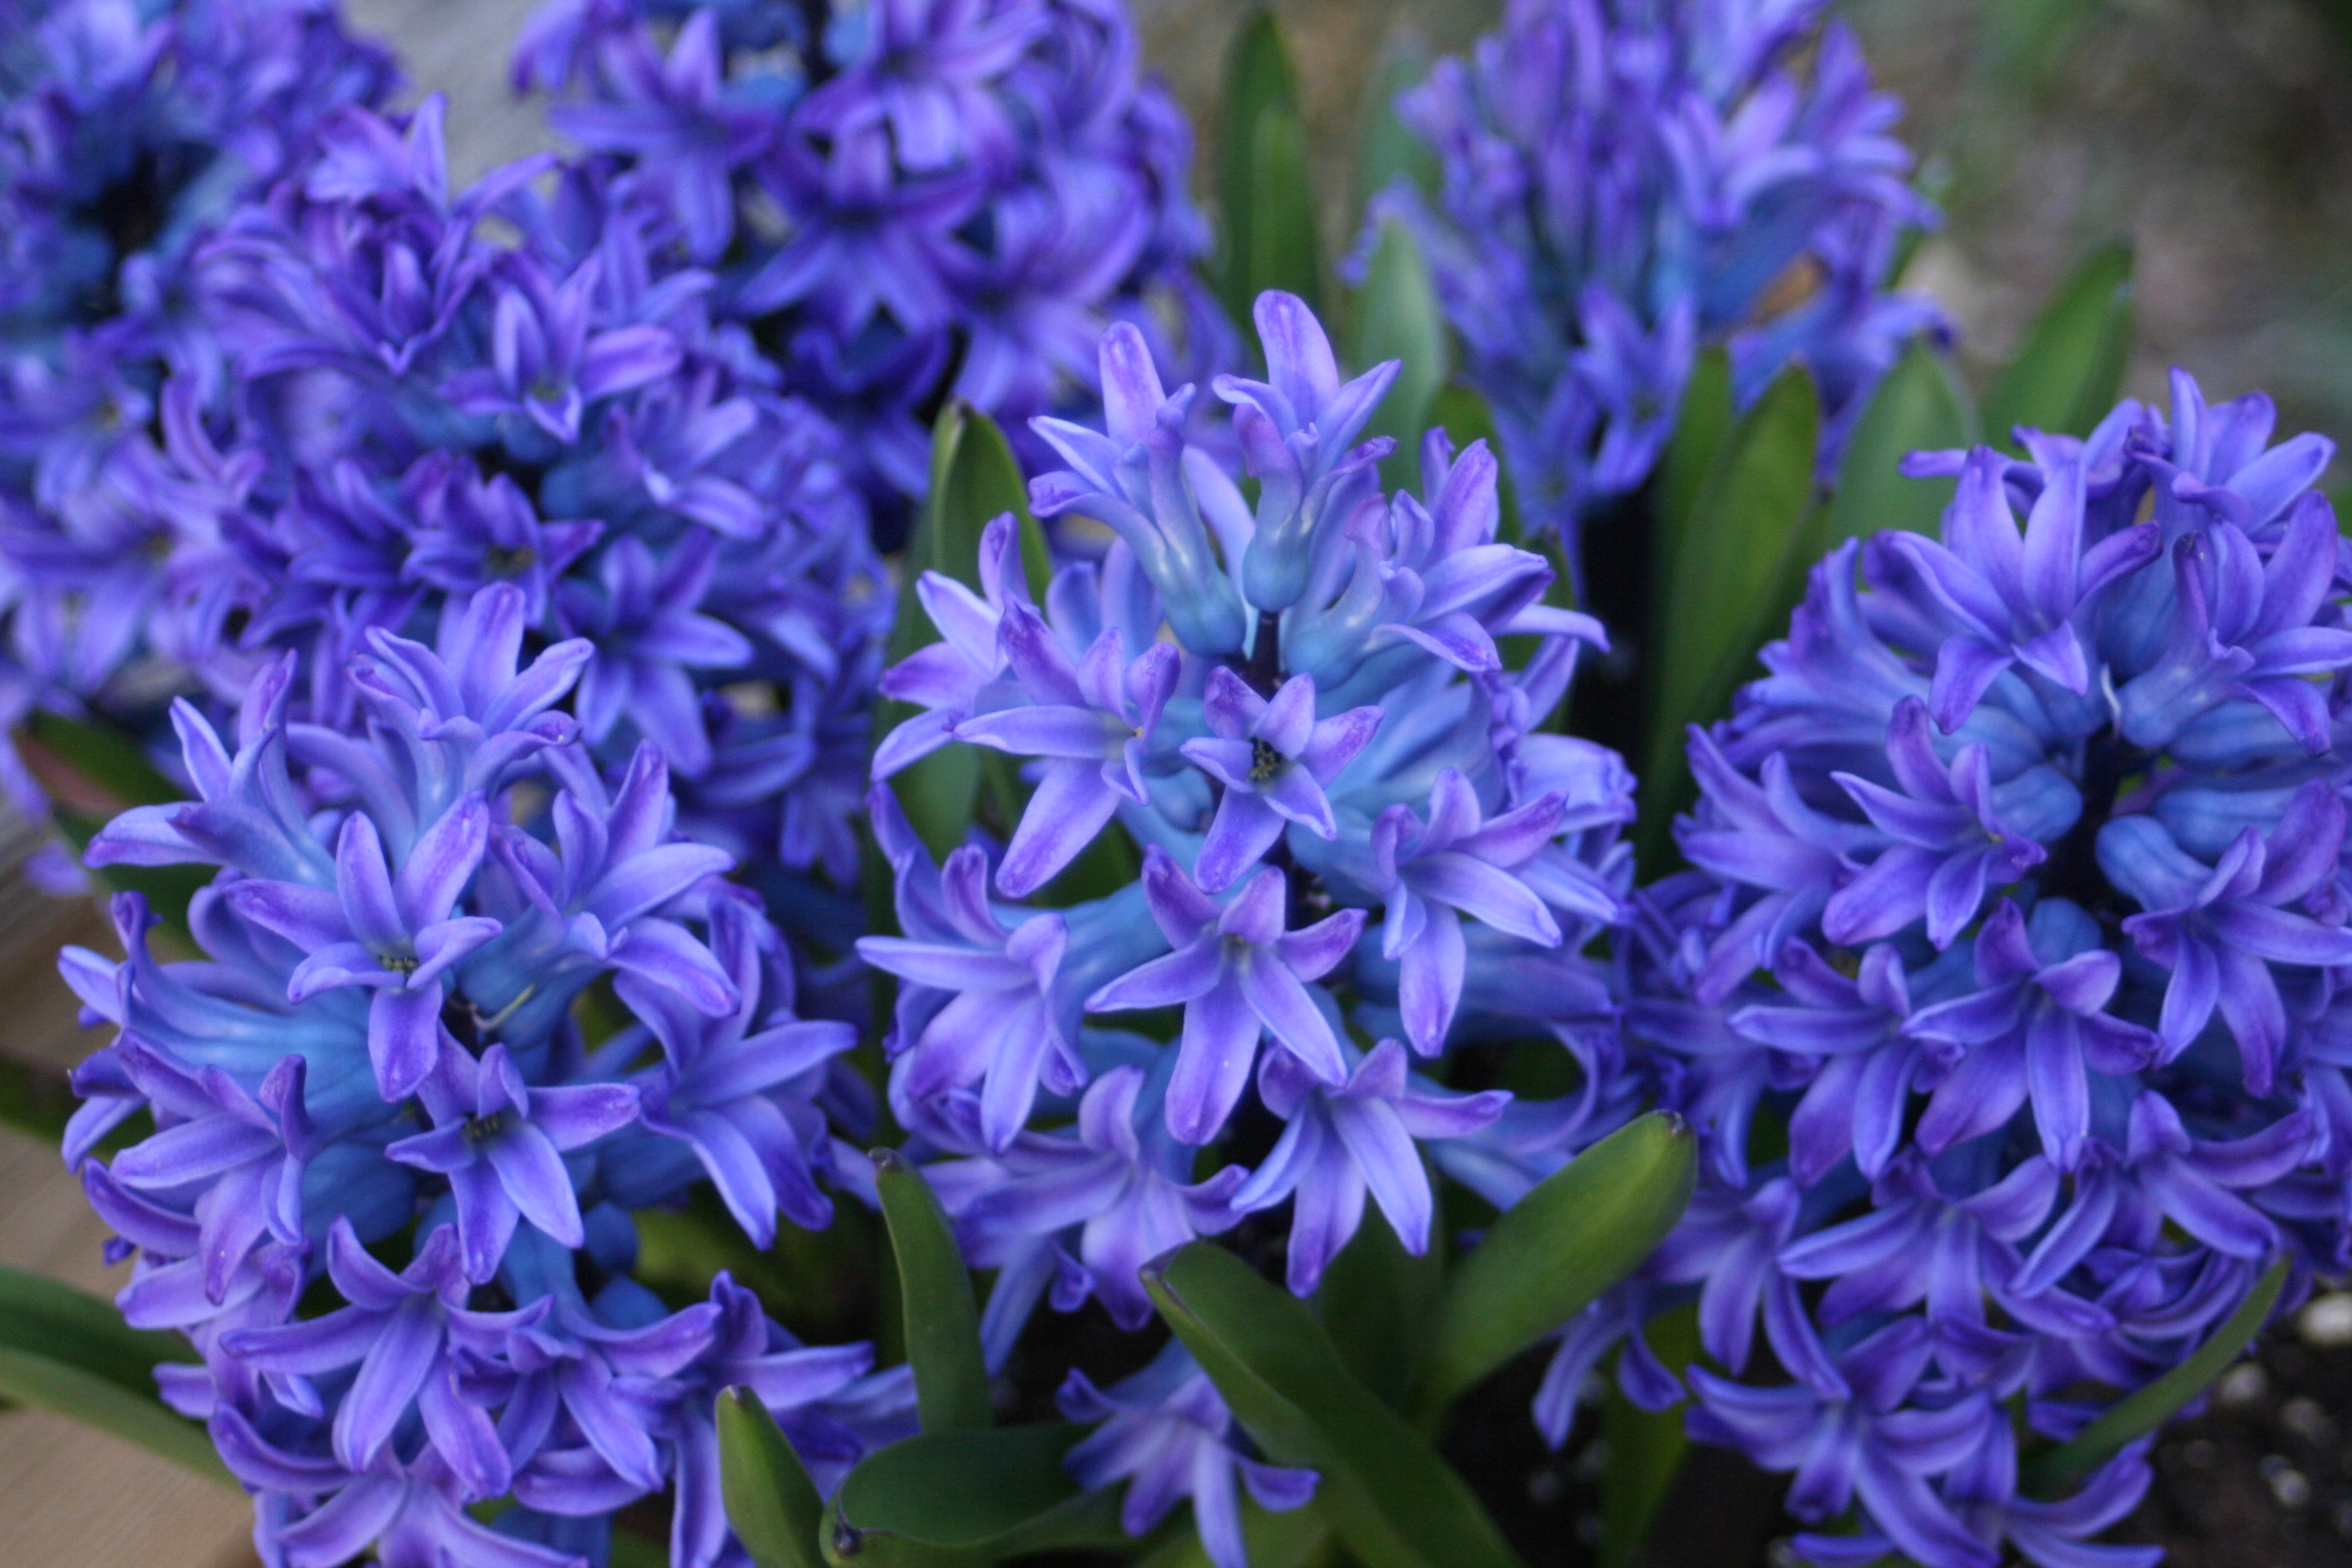 Our Hyacinth